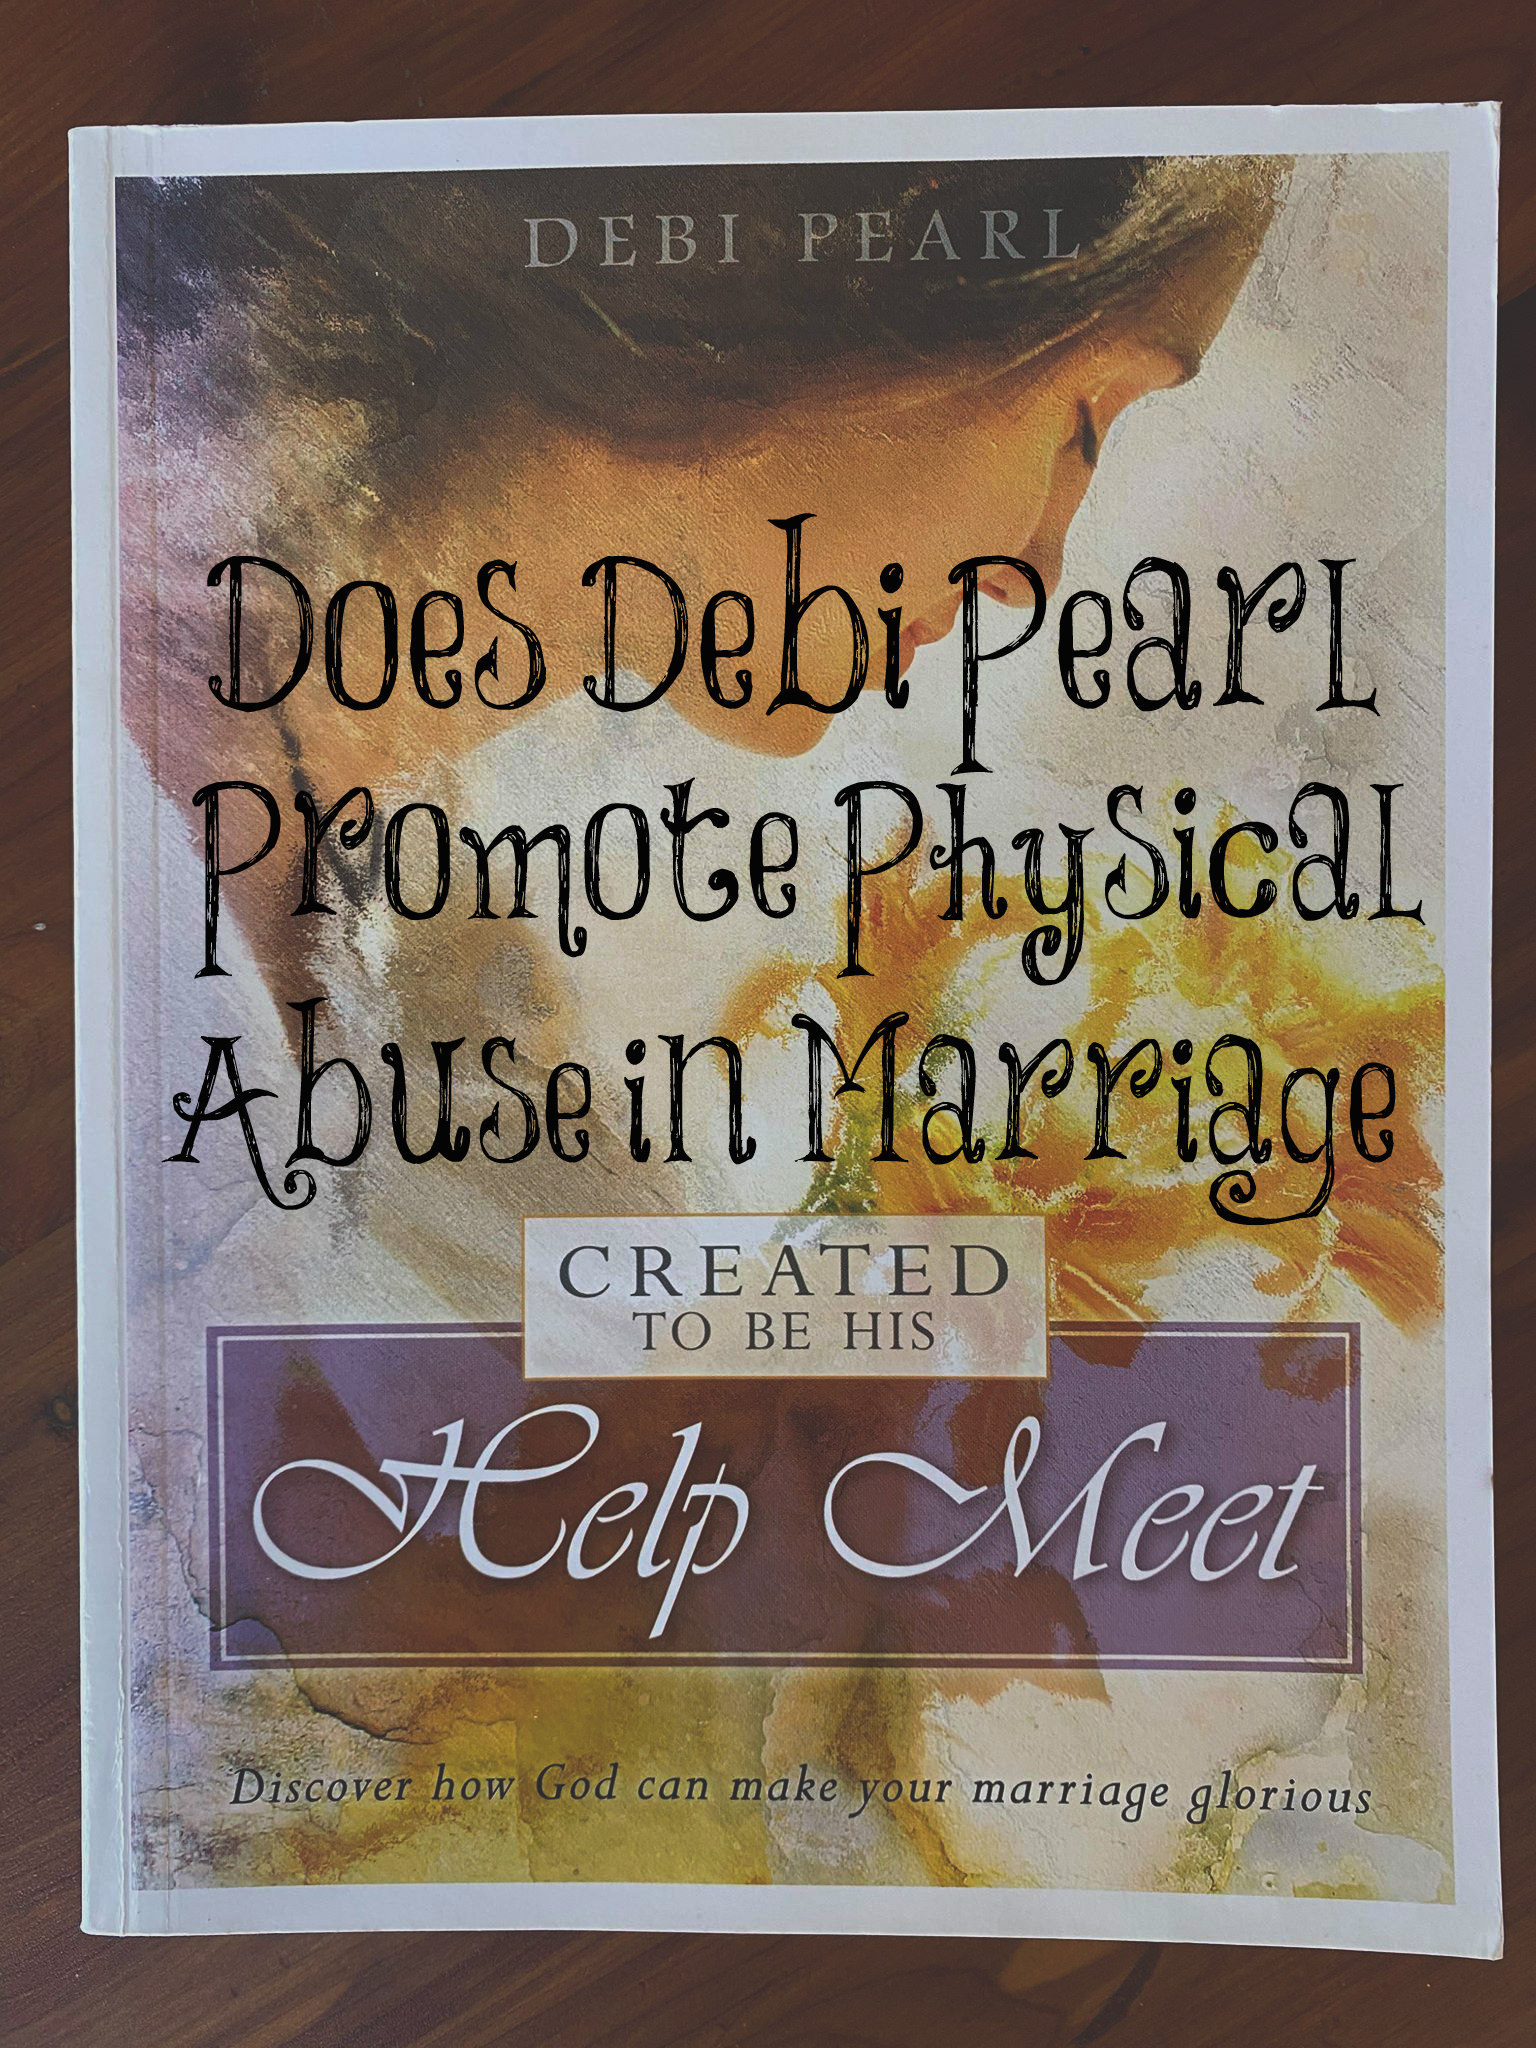 Does Debi Pearl Promote Physical Abuse in Marriage?